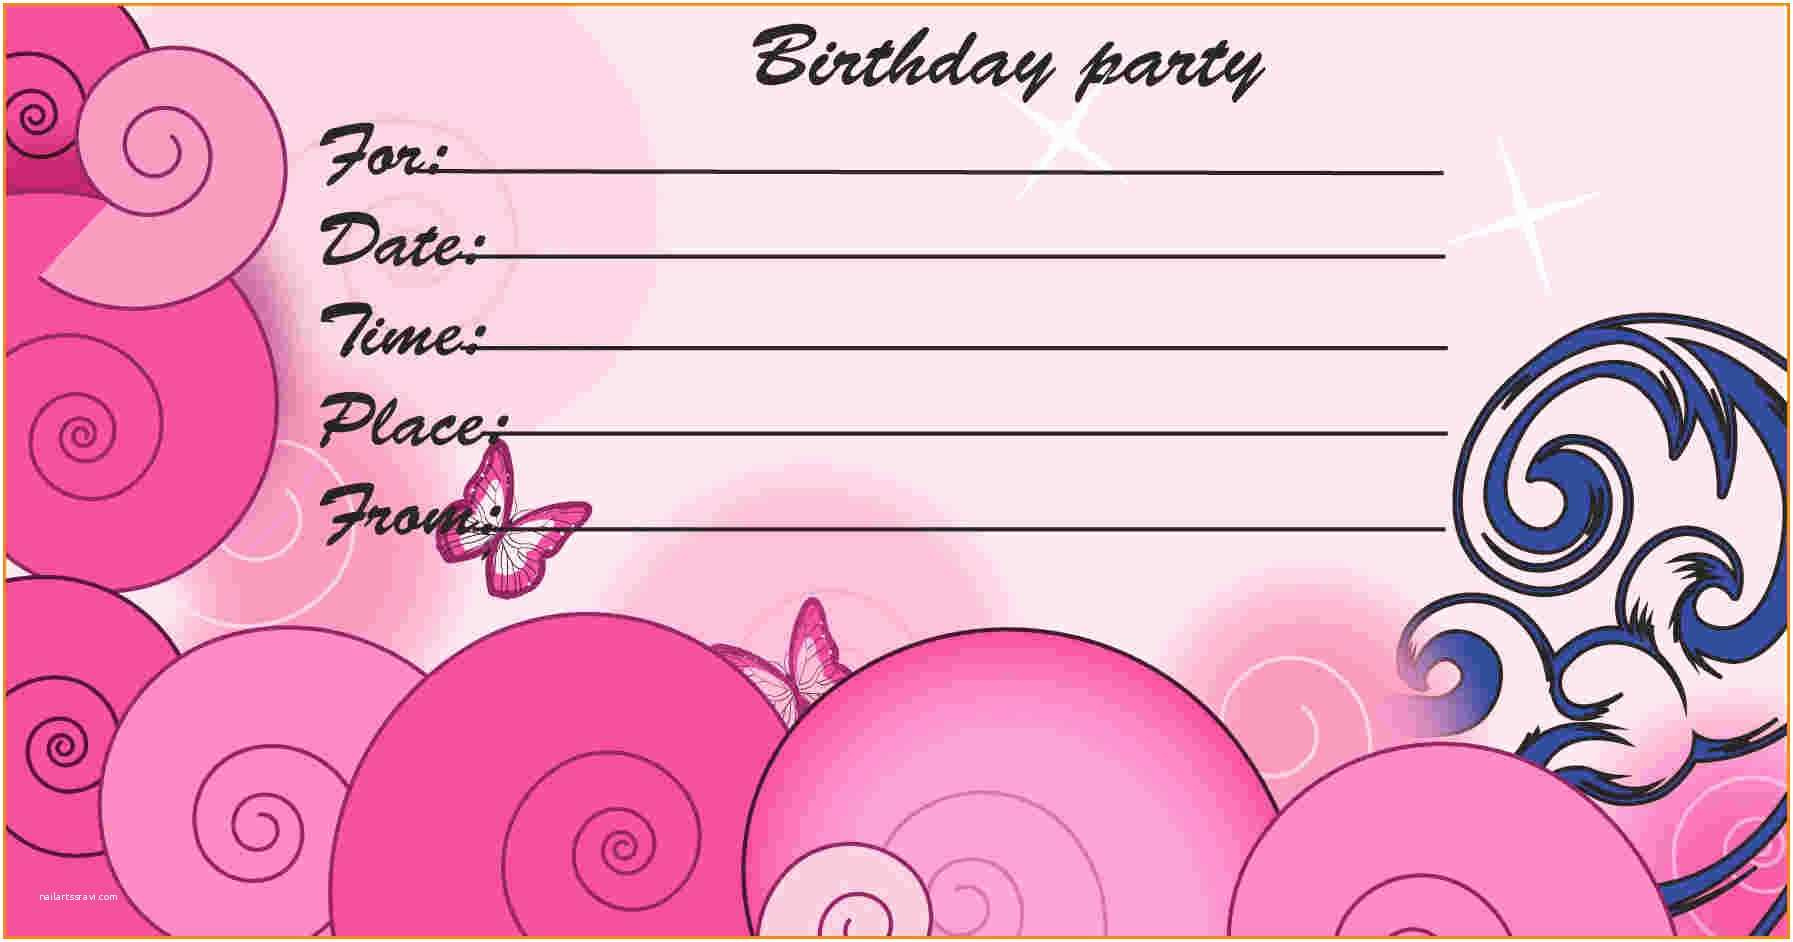 Design Party Invitations Free Printable Birthday Invitations there are so Many